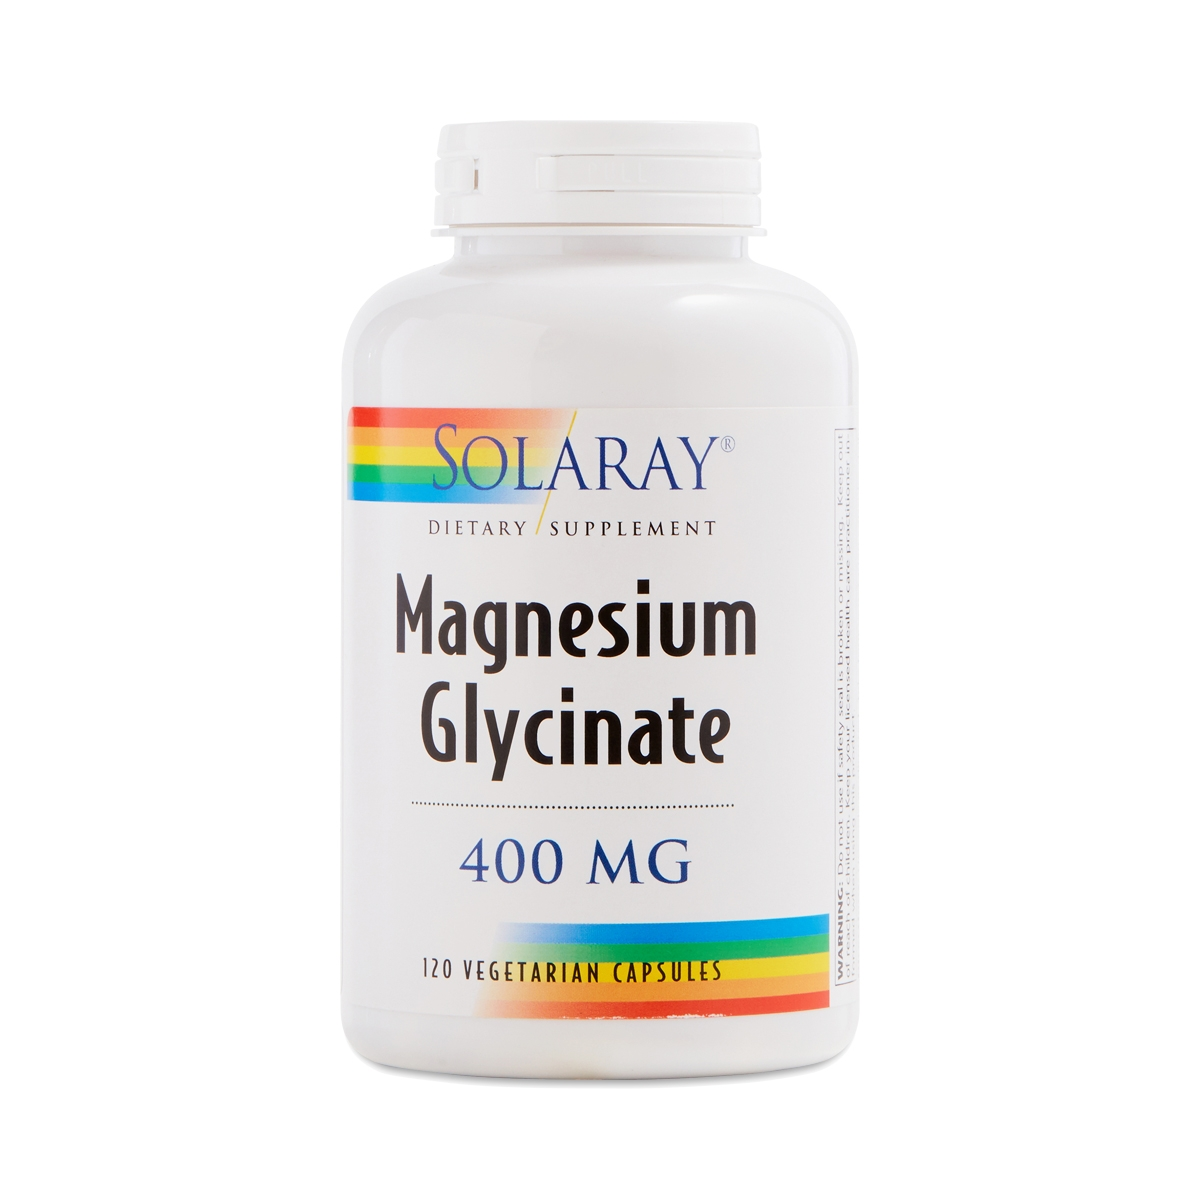 Best magnesium supplement for leg cramps Solaray Magnesium Glycinate 120 vegetarian capsules